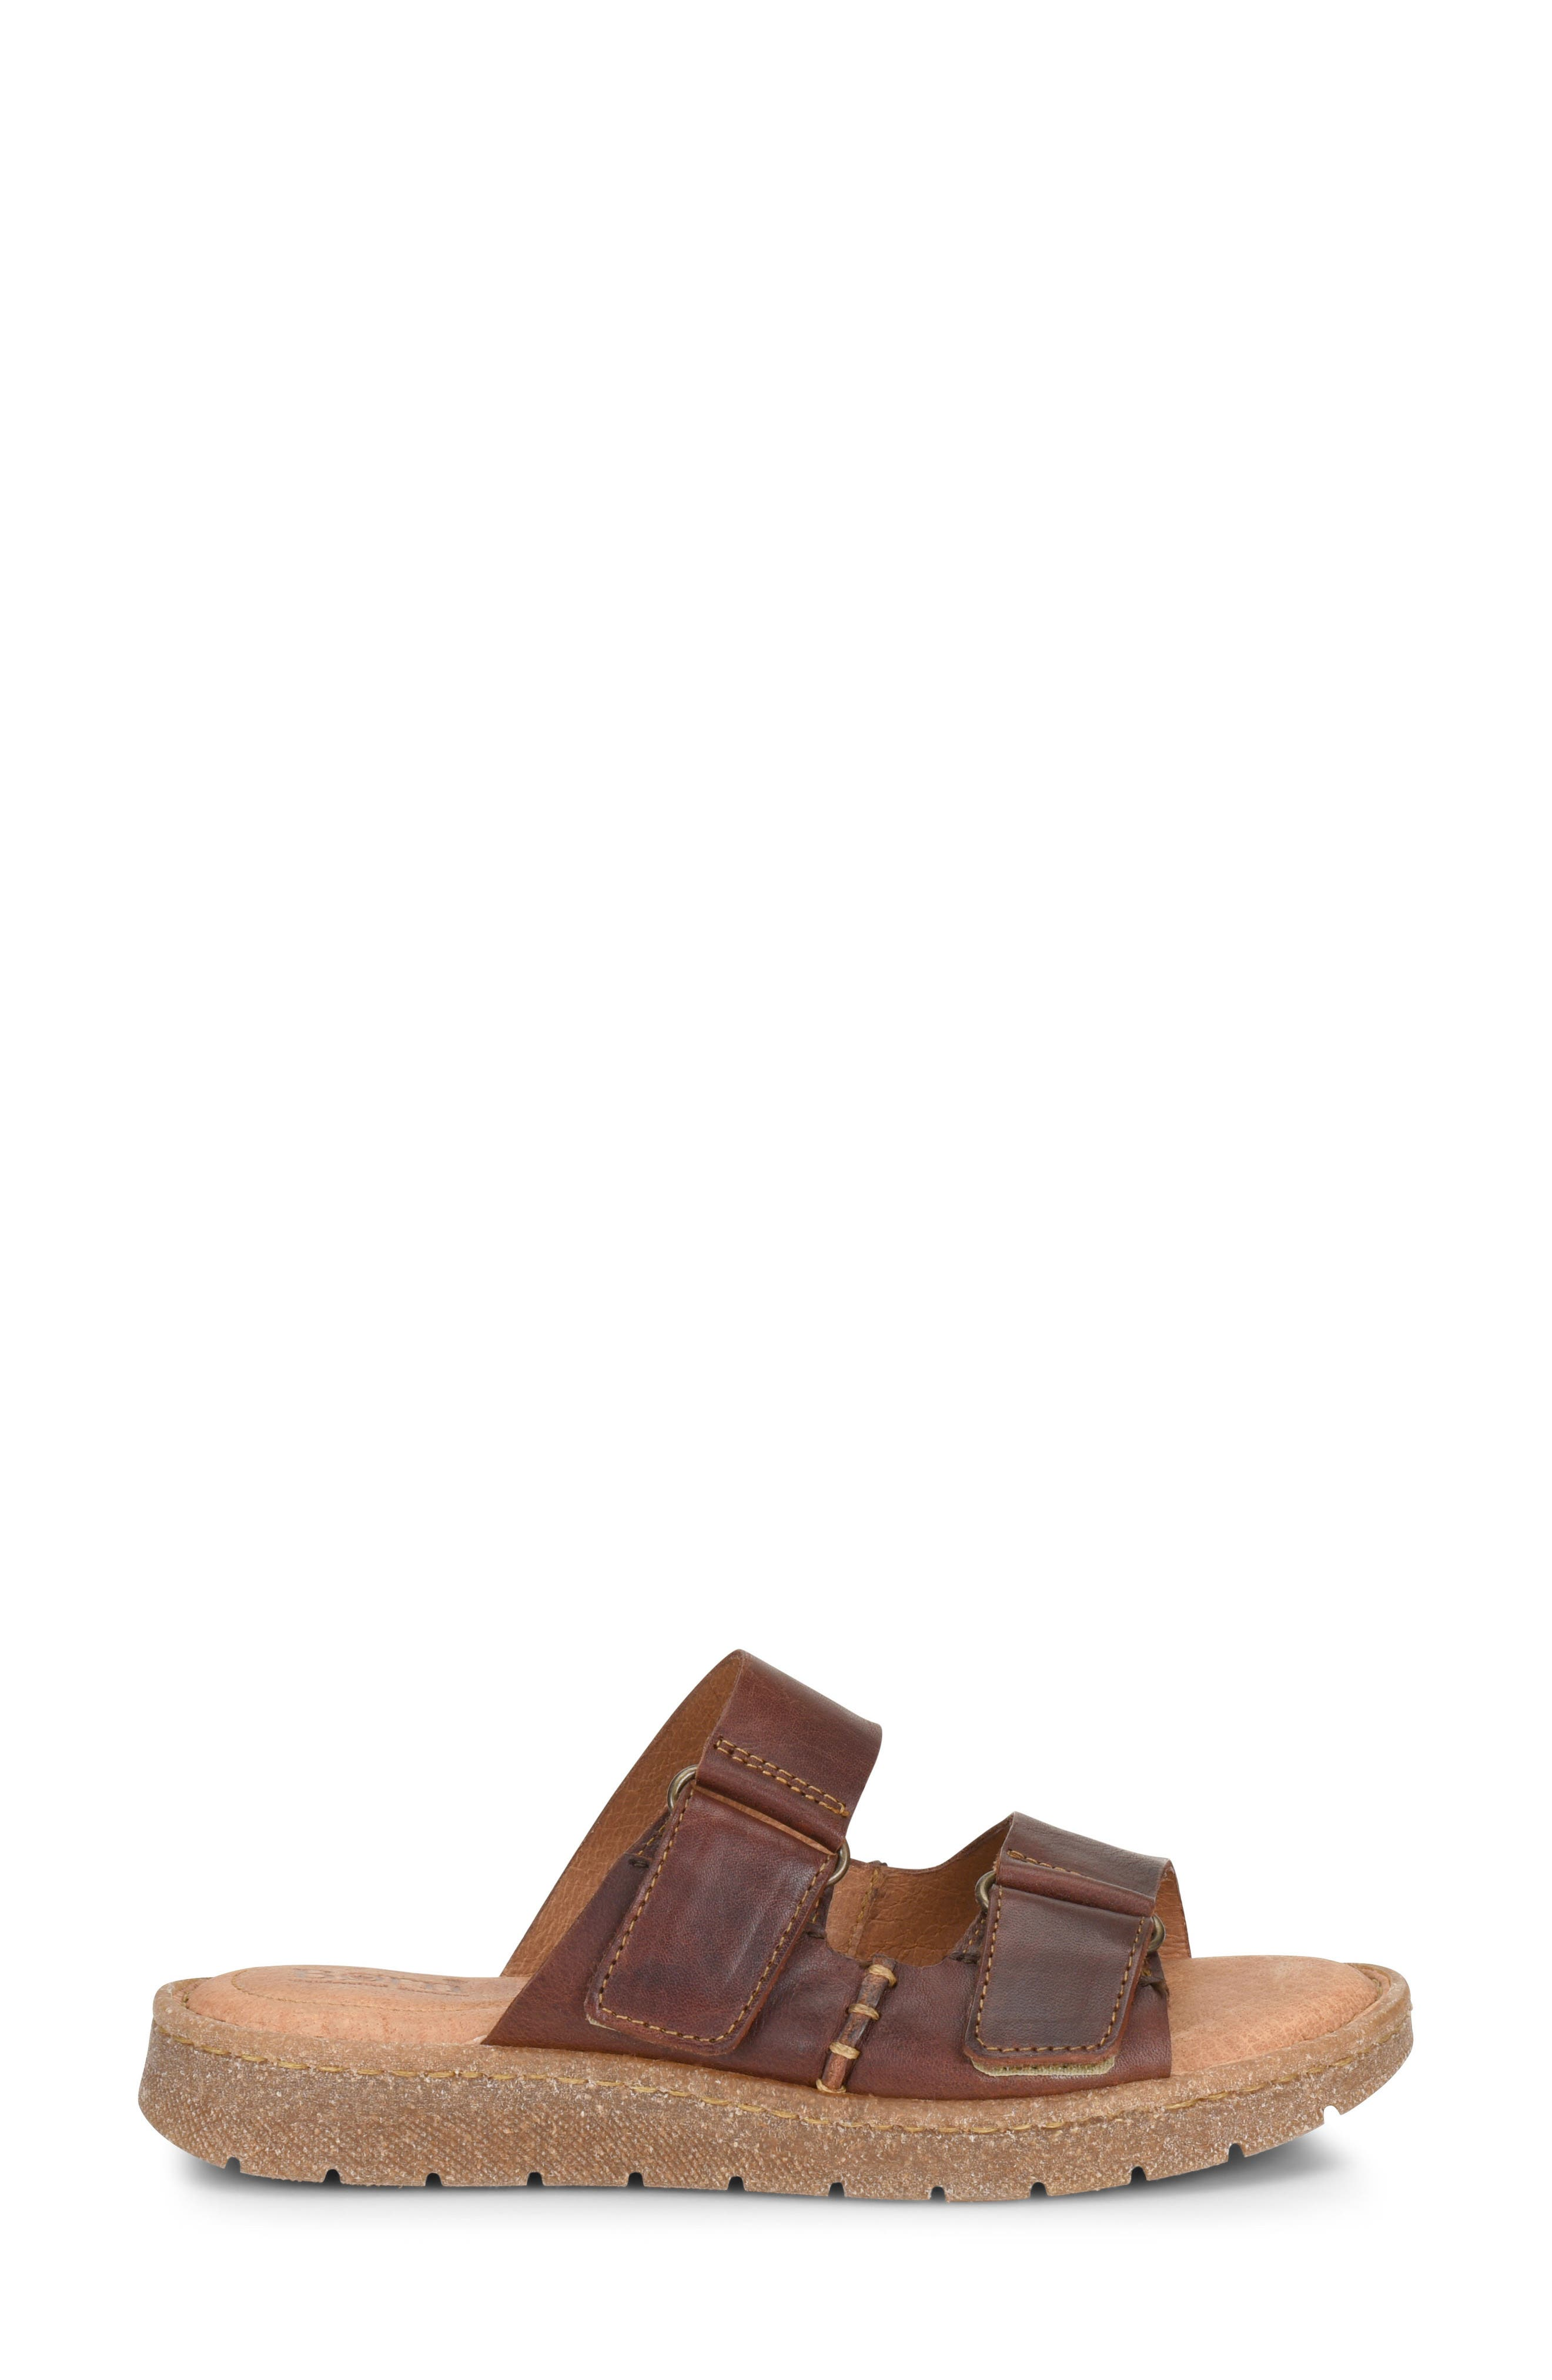 BØRN,                             Dominica Sandal,                             Alternate thumbnail 3, color,                             RUST LEATHER